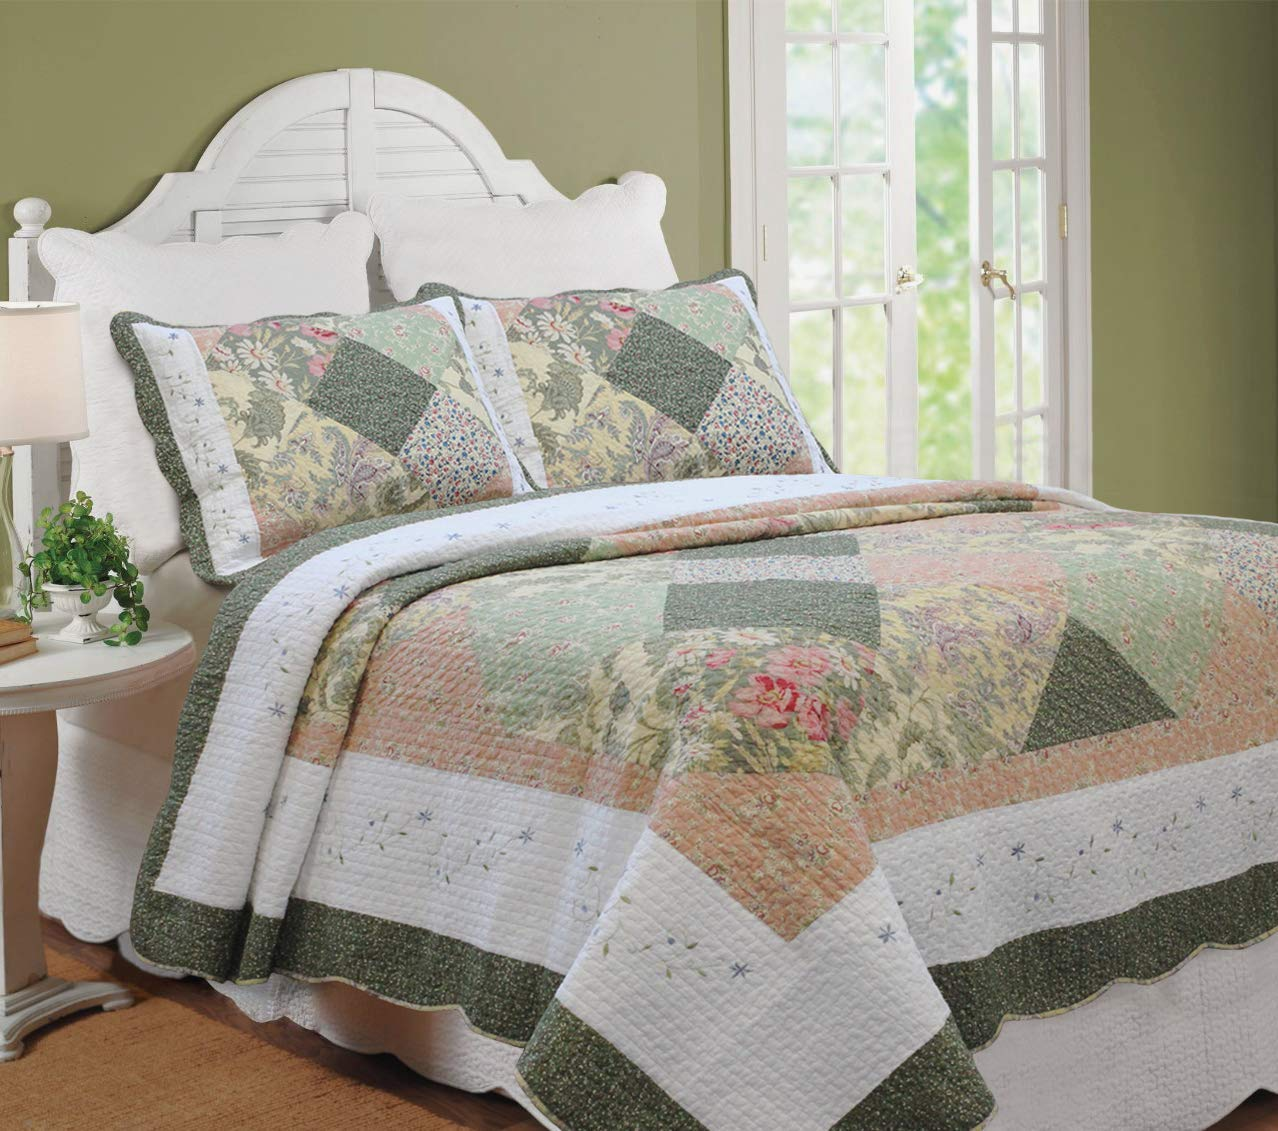 Cozy Line Home Fashions Floral Real Patchwork Olive Green Pink Scalloped Edge Country 100% Cotton Quilt Bedding Set, Reversible Coverlet Bedspread for Women